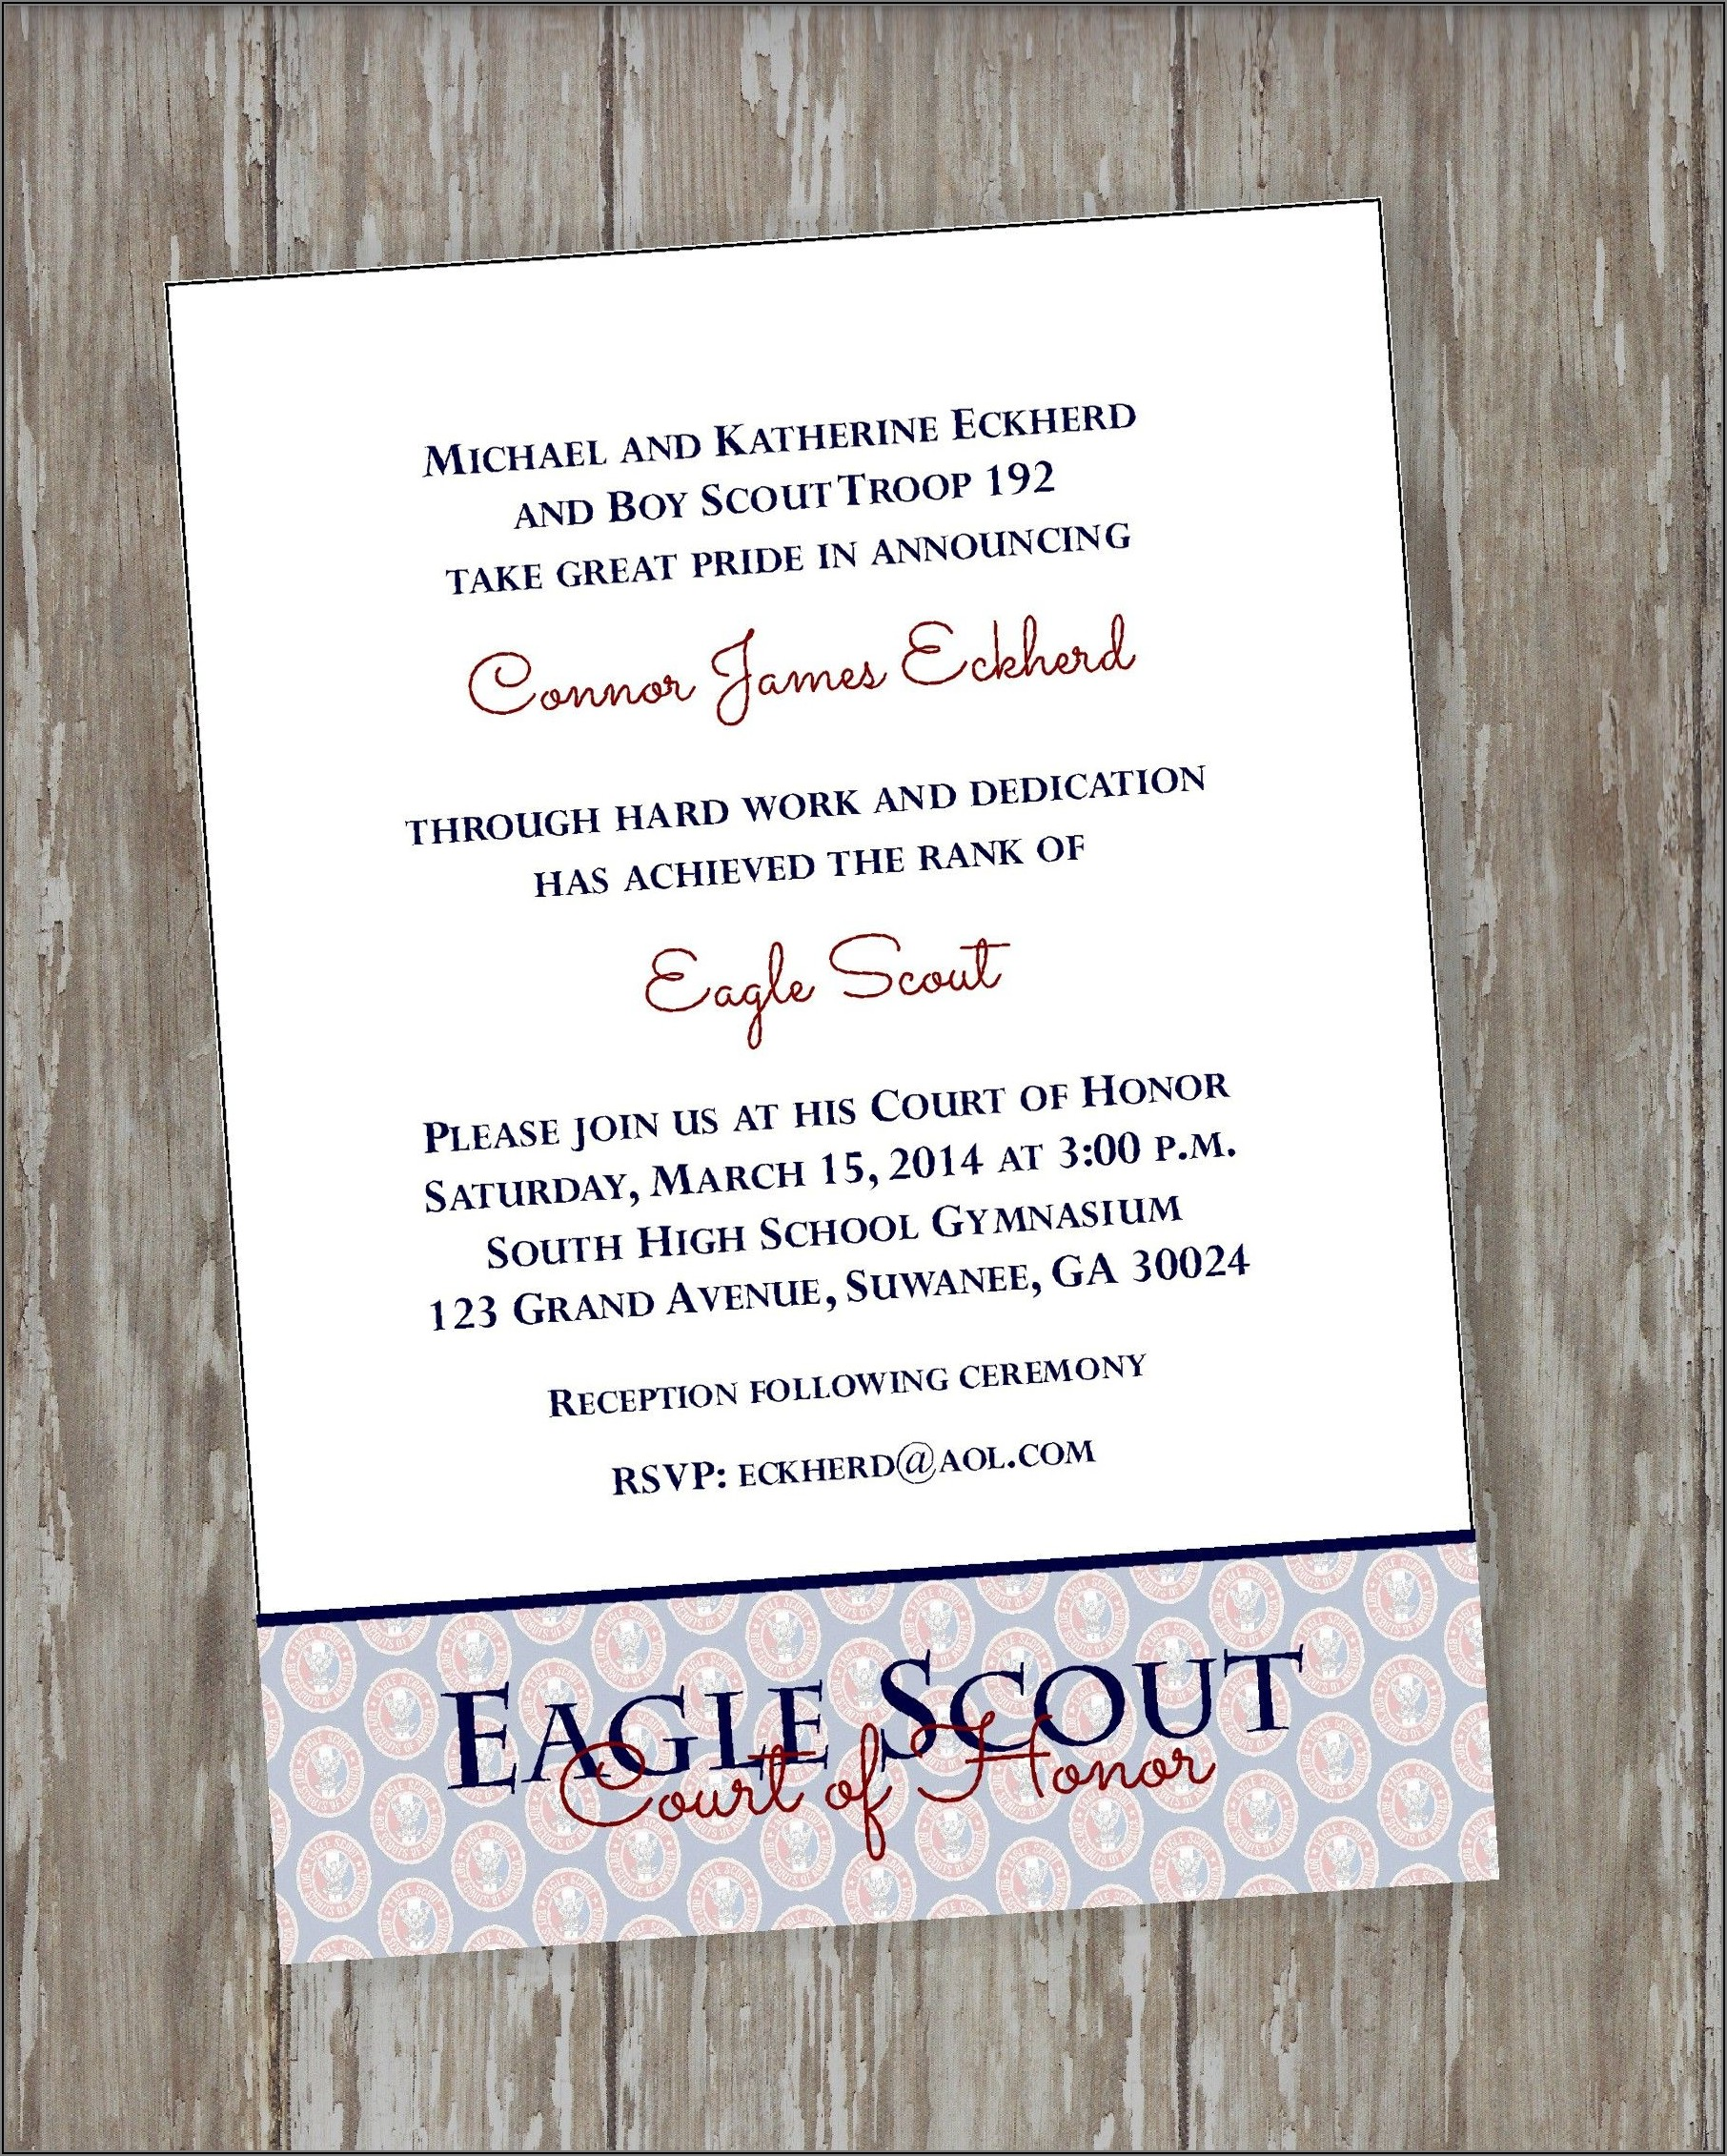 Eagle Scout Court Of Honor Invitations